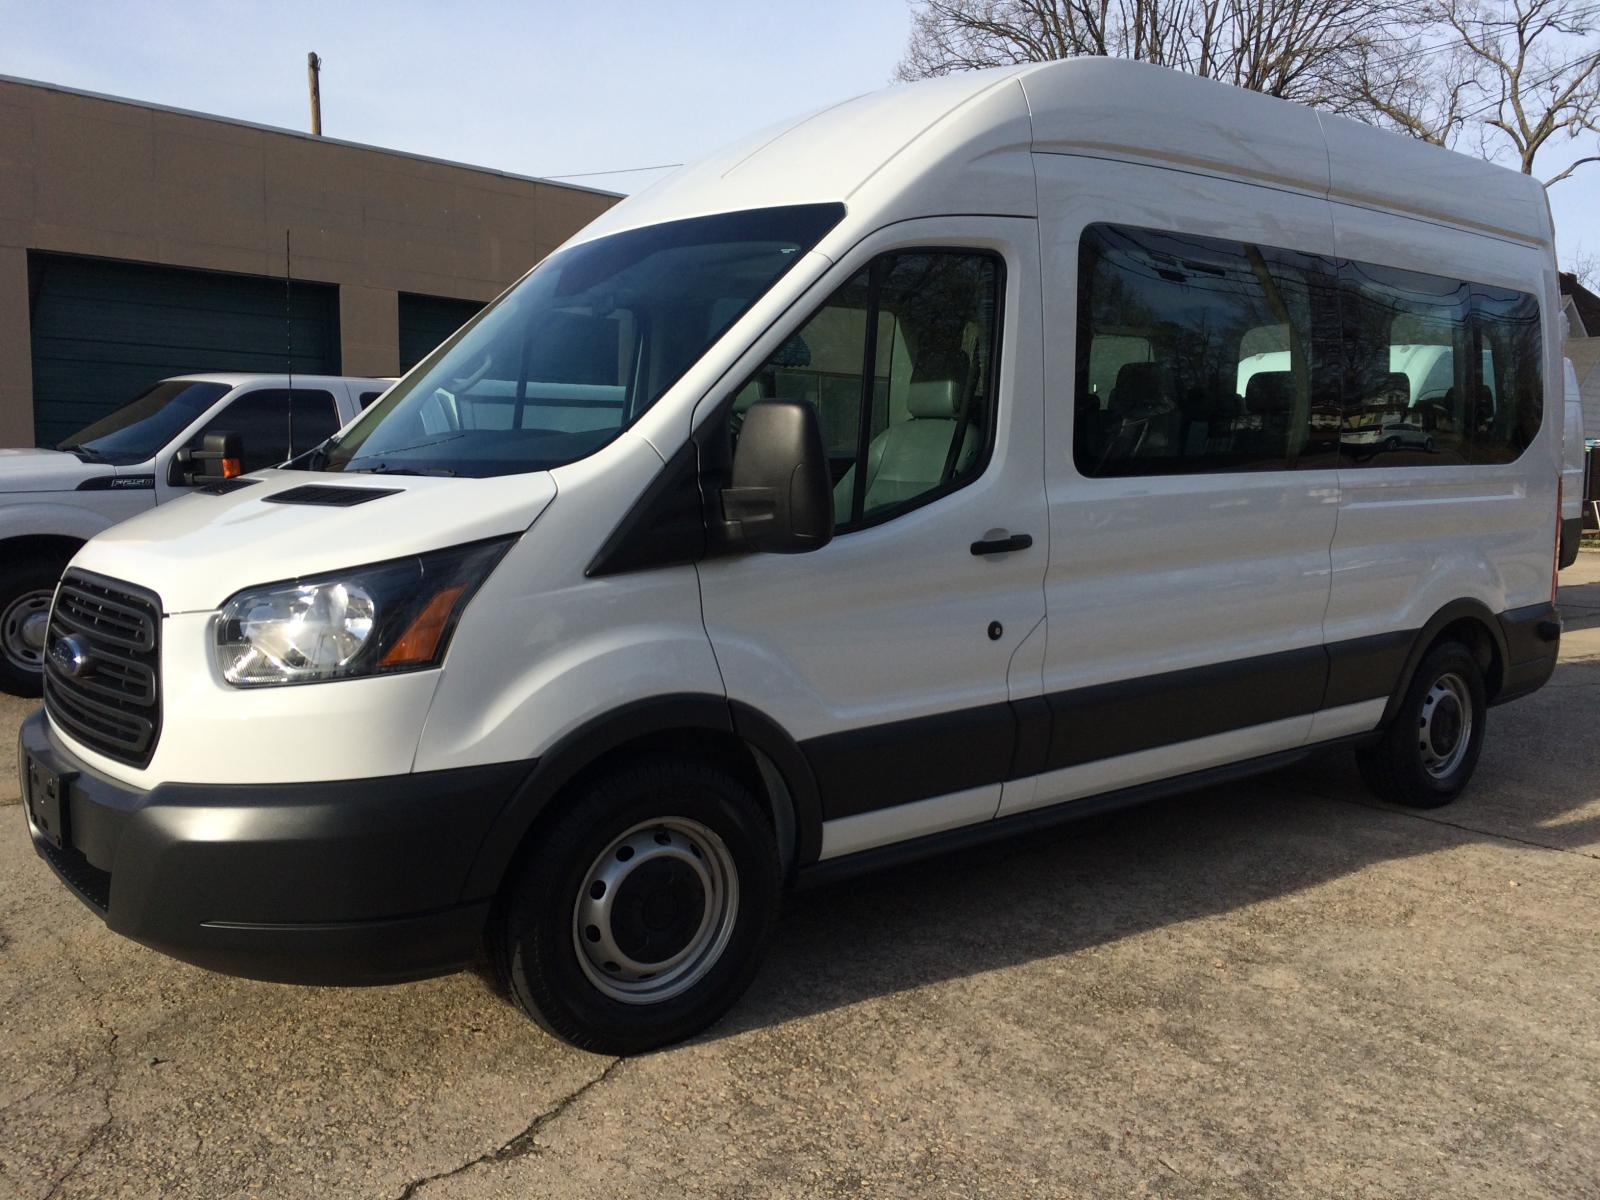 high ford passenger metallic wagon tuxedo composite transit research doors low roof lwb black w van door xl large groovecar side sliding